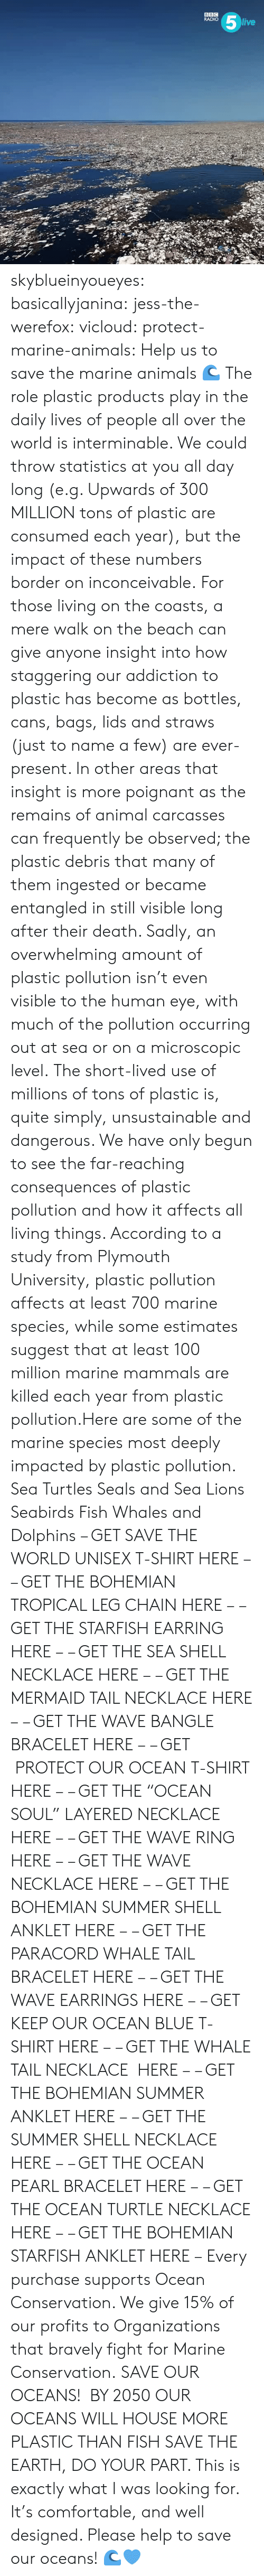 "inconceivable: RADIO  ive skyblueinyoueyes:  basicallyjanina: jess-the-werefox:   vicloud:   protect-marine-animals:  Help us to save the marine animals 🌊 The role plastic products play in the daily lives of people all over the world is interminable. We could throw statistics at you all day long (e.g. Upwards of 300 MILLION tons of plastic are consumed each year), but the impact of these numbers border on inconceivable. For those living on the coasts, a mere walk on the beach can give anyone insight into how staggering our addiction to plastic has become as bottles, cans, bags, lids and straws (just to name a few) are ever-present. In other areas that insight is more poignant as the remains of animal carcasses can frequently be observed; the plastic debris that many of them ingested or became entangled in still visible long after their death. Sadly, an overwhelming amount of plastic pollution isn't even visible to the human eye, with much of the pollution occurring out at sea or on a microscopic level. The short-lived use of millions of tons of plastic is, quite simply, unsustainable and dangerous. We have only begun to see the far-reaching consequences of plastic pollution and how it affects all living things. According to a study from Plymouth University, plastic pollution affects at least 700 marine species, while some estimates suggest that at least 100 million marine mammals are killed each year from plastic pollution.Here are some of the marine species most deeply impacted by plastic pollution. Sea Turtles Seals and Sea Lions Seabirds Fish Whales and Dolphins – GET SAVE THE WORLD UNISEX T-SHIRT HERE – – GET THE BOHEMIAN TROPICAL LEG CHAIN HERE – – GET THE STARFISH EARRING HERE – – GET THE SEA SHELL NECKLACE HERE – – GET THE MERMAID TAIL NECKLACE HERE – – GET THE WAVE BANGLE BRACELET HERE – – GET  PROTECT OUR OCEAN T-SHIRT HERE – – GET THE ""OCEAN SOUL"" LAYERED NECKLACE HERE – – GET THE WAVE RING HERE – – GET THE WAVE NECKLACE HERE – – GET THE BOHEMIAN SUMMER SHELL ANKLET HERE – – GET THE PARACORD WHALE TAIL BRACELET HERE – – GET THE WAVE EARRINGS HERE – – GET KEEP OUR OCEAN BLUE T-SHIRT HERE – – GET THE WHALE TAIL NECKLACE  HERE – – GET THE BOHEMIAN SUMMER ANKLET HERE – – GET THE SUMMER SHELL NECKLACE HERE – – GET THE OCEAN PEARL BRACELET HERE – – GET THE OCEAN TURTLE NECKLACE HERE – – GET THE BOHEMIAN STARFISH ANKLET HERE – Every purchase supports Ocean Conservation. We give 15% of our profits to Organizations that bravely fight for Marine Conservation.  SAVE OUR OCEANS!    BY 2050 OUR OCEANS WILL HOUSE MORE PLASTIC THAN FISH   SAVE THE EARTH, DO YOUR PART.   This is exactly what I was looking for. It's comfortable, and well designed. Please help to save our oceans! 🌊💙"